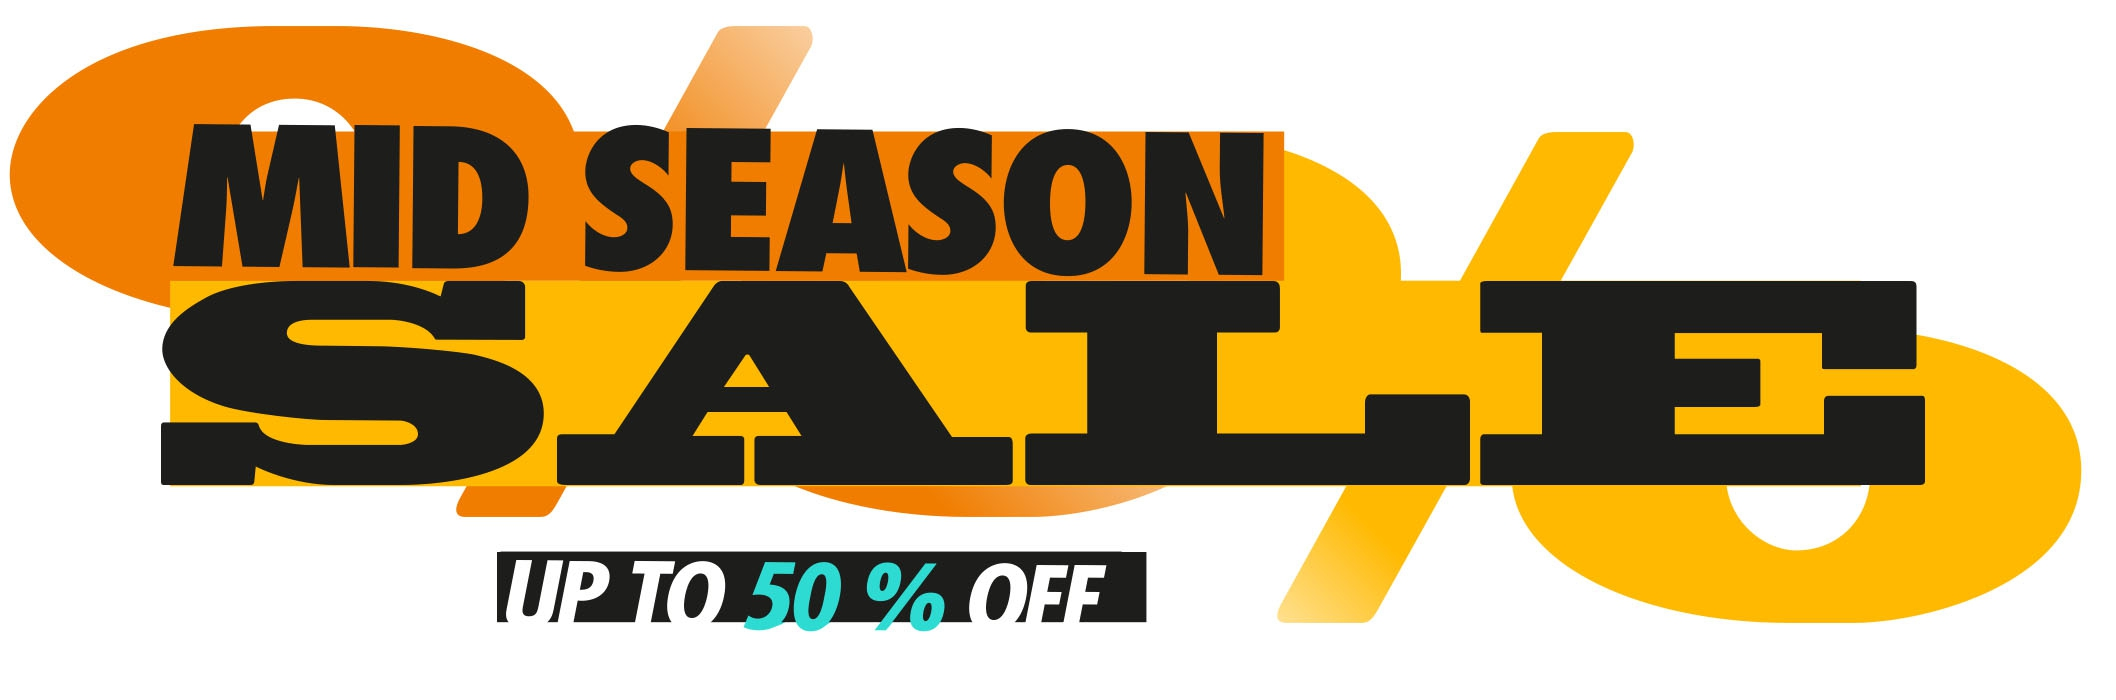 MID SEASON SALE | Vegan shoes on sale | Up to 50 % OFF vegan shoes and accessories